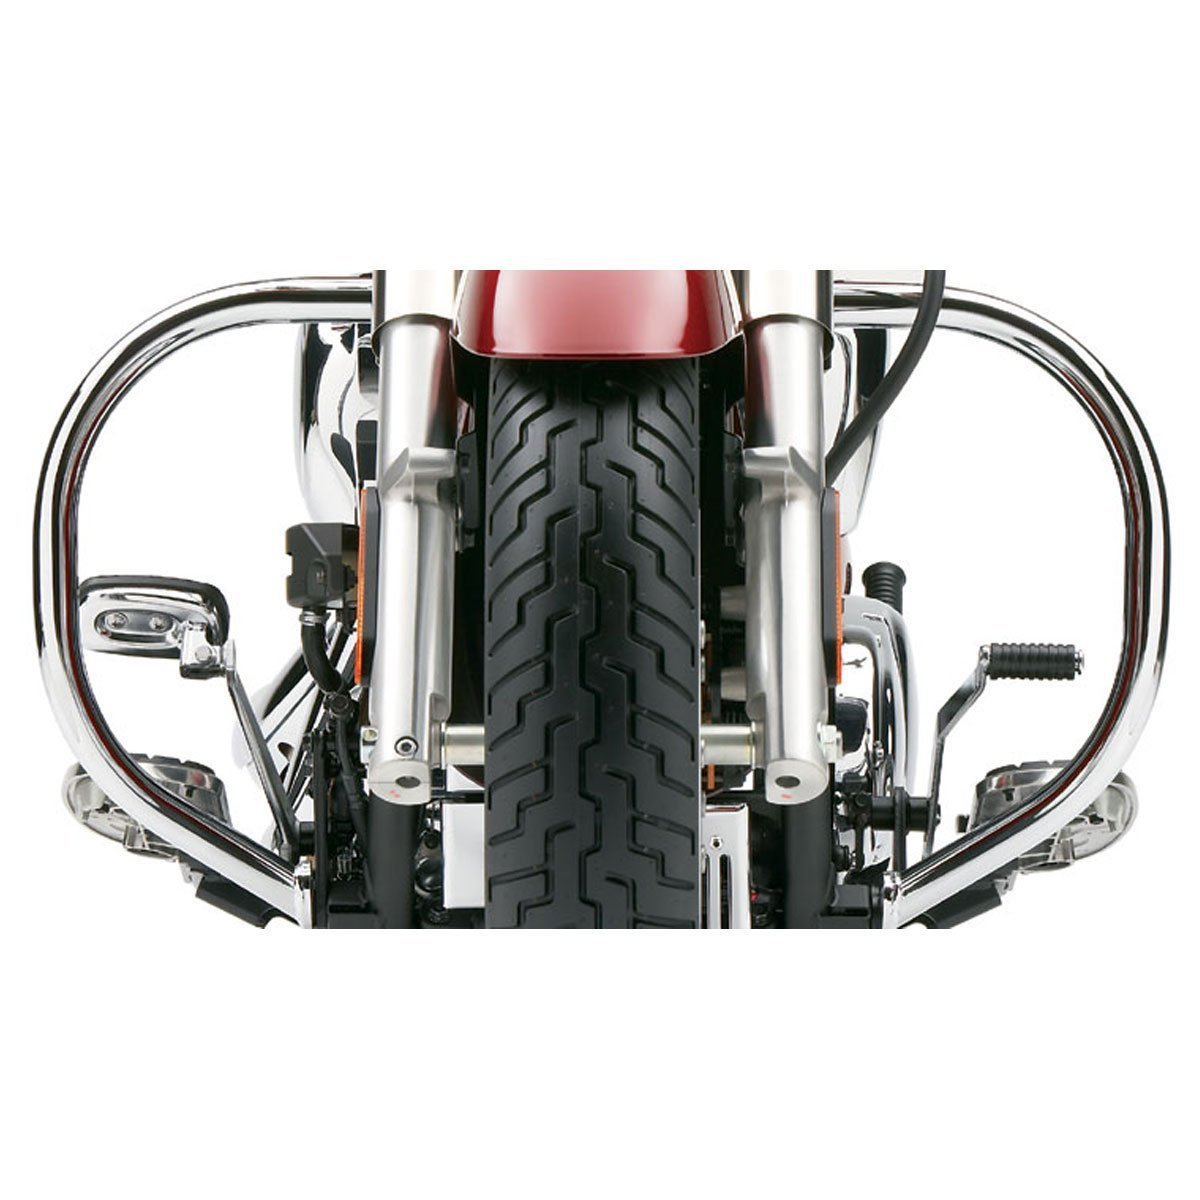 Get it delivered to your door - COBRA Freeway Bars for 1998-2002 Honda VT1100C3 Shadow Aero - 4500 (EGP)